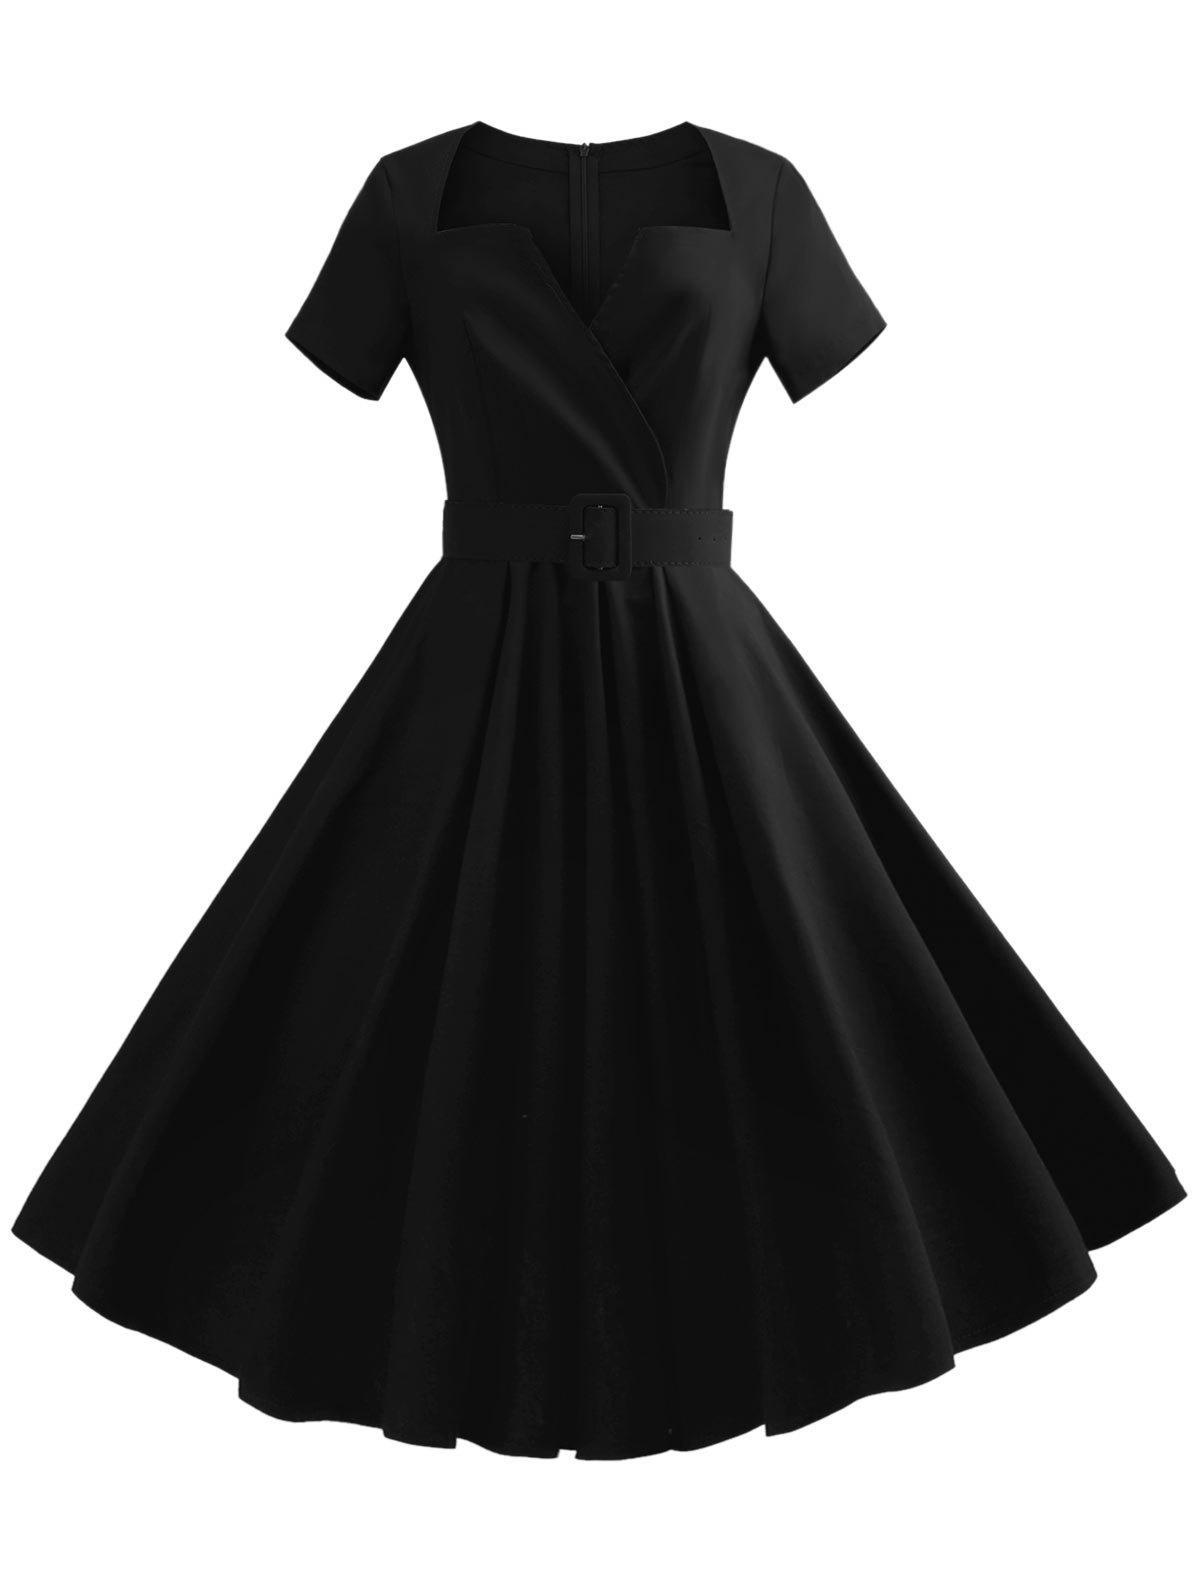 New V Neck Vintage Dress with Belt